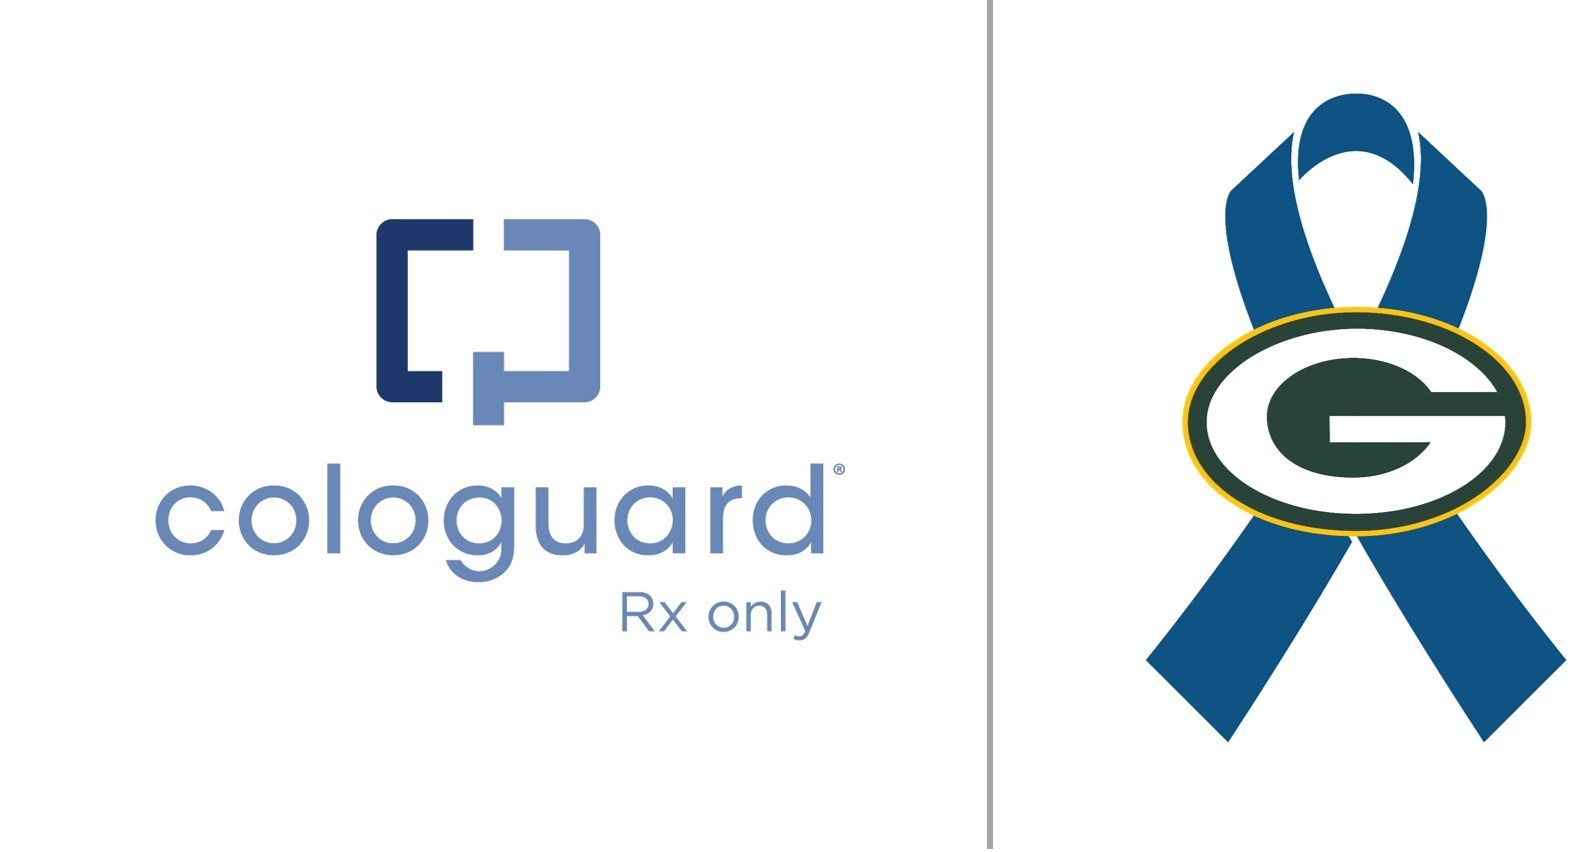 Green Bay Packers-Cologuard Colon Cancer Awareness Campaign (PRNewsfoto/Exact Sciences Corp.)